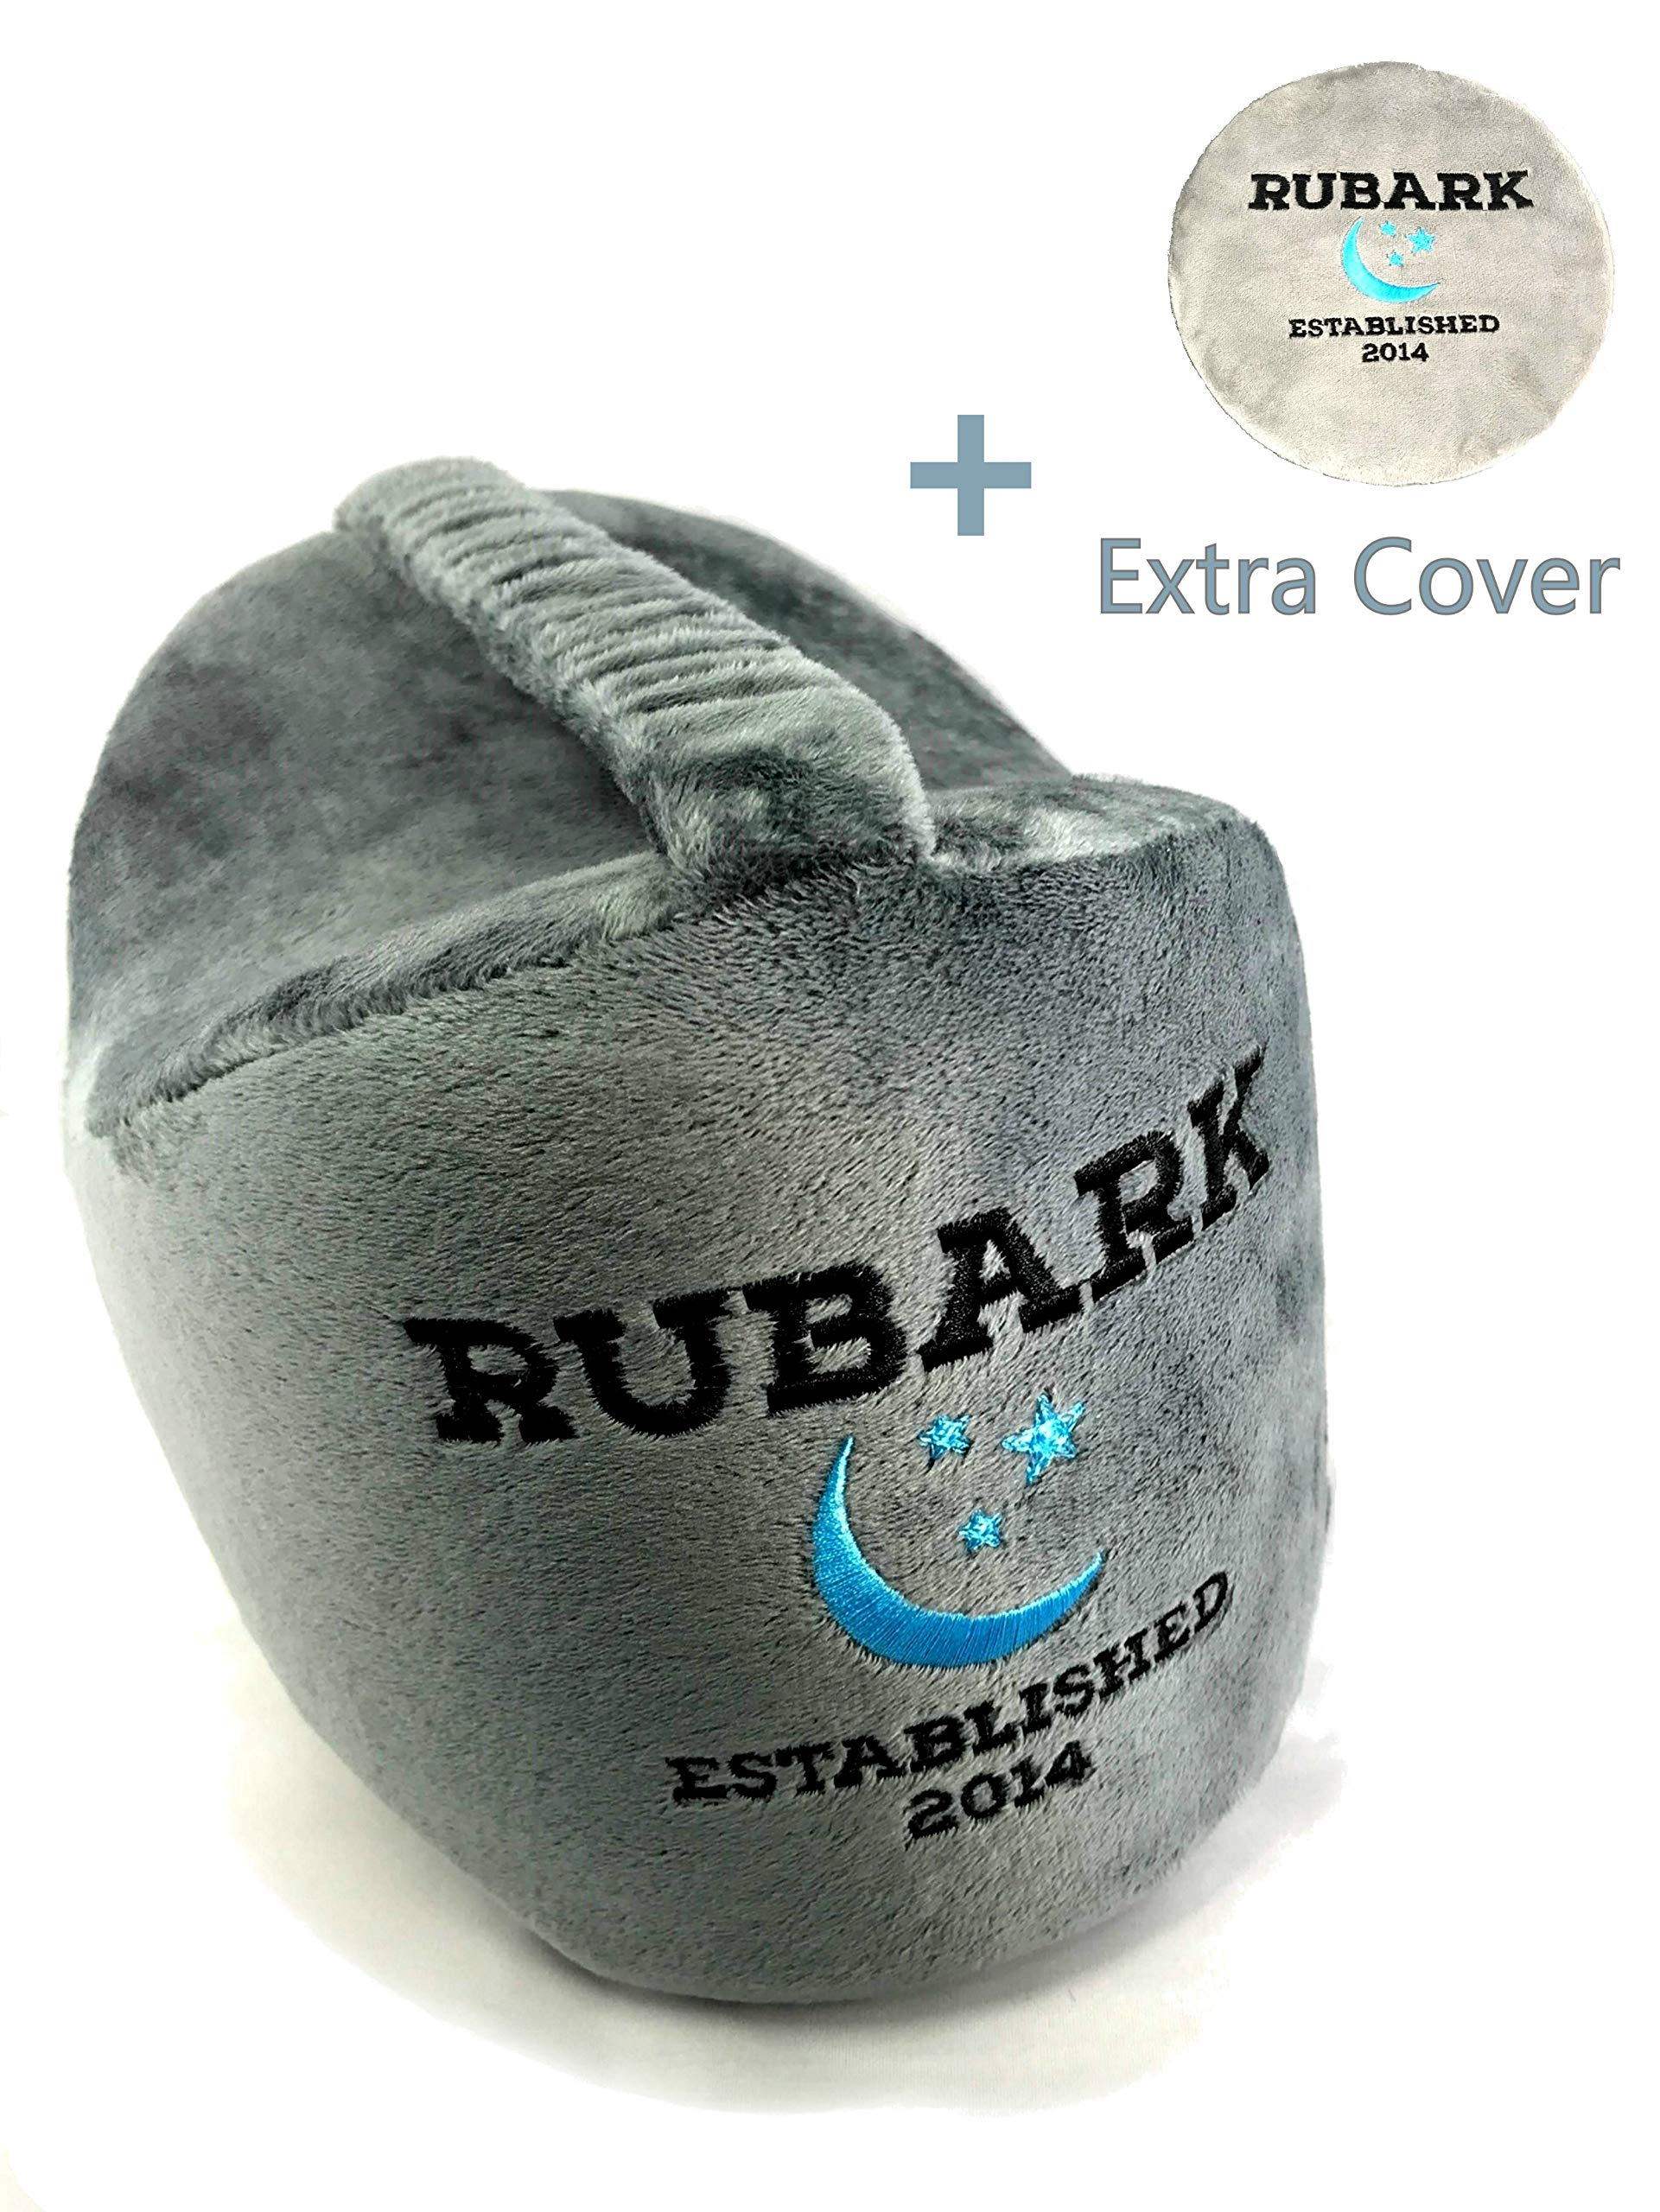 Rubark Orthopedic Knee Pillow for Side Sleepers - Back, Hip, Sciatica, Ankle, Joint and Knee Pain Relief - Memory Foam Wedge Contour Pillow with Adjustable Strap